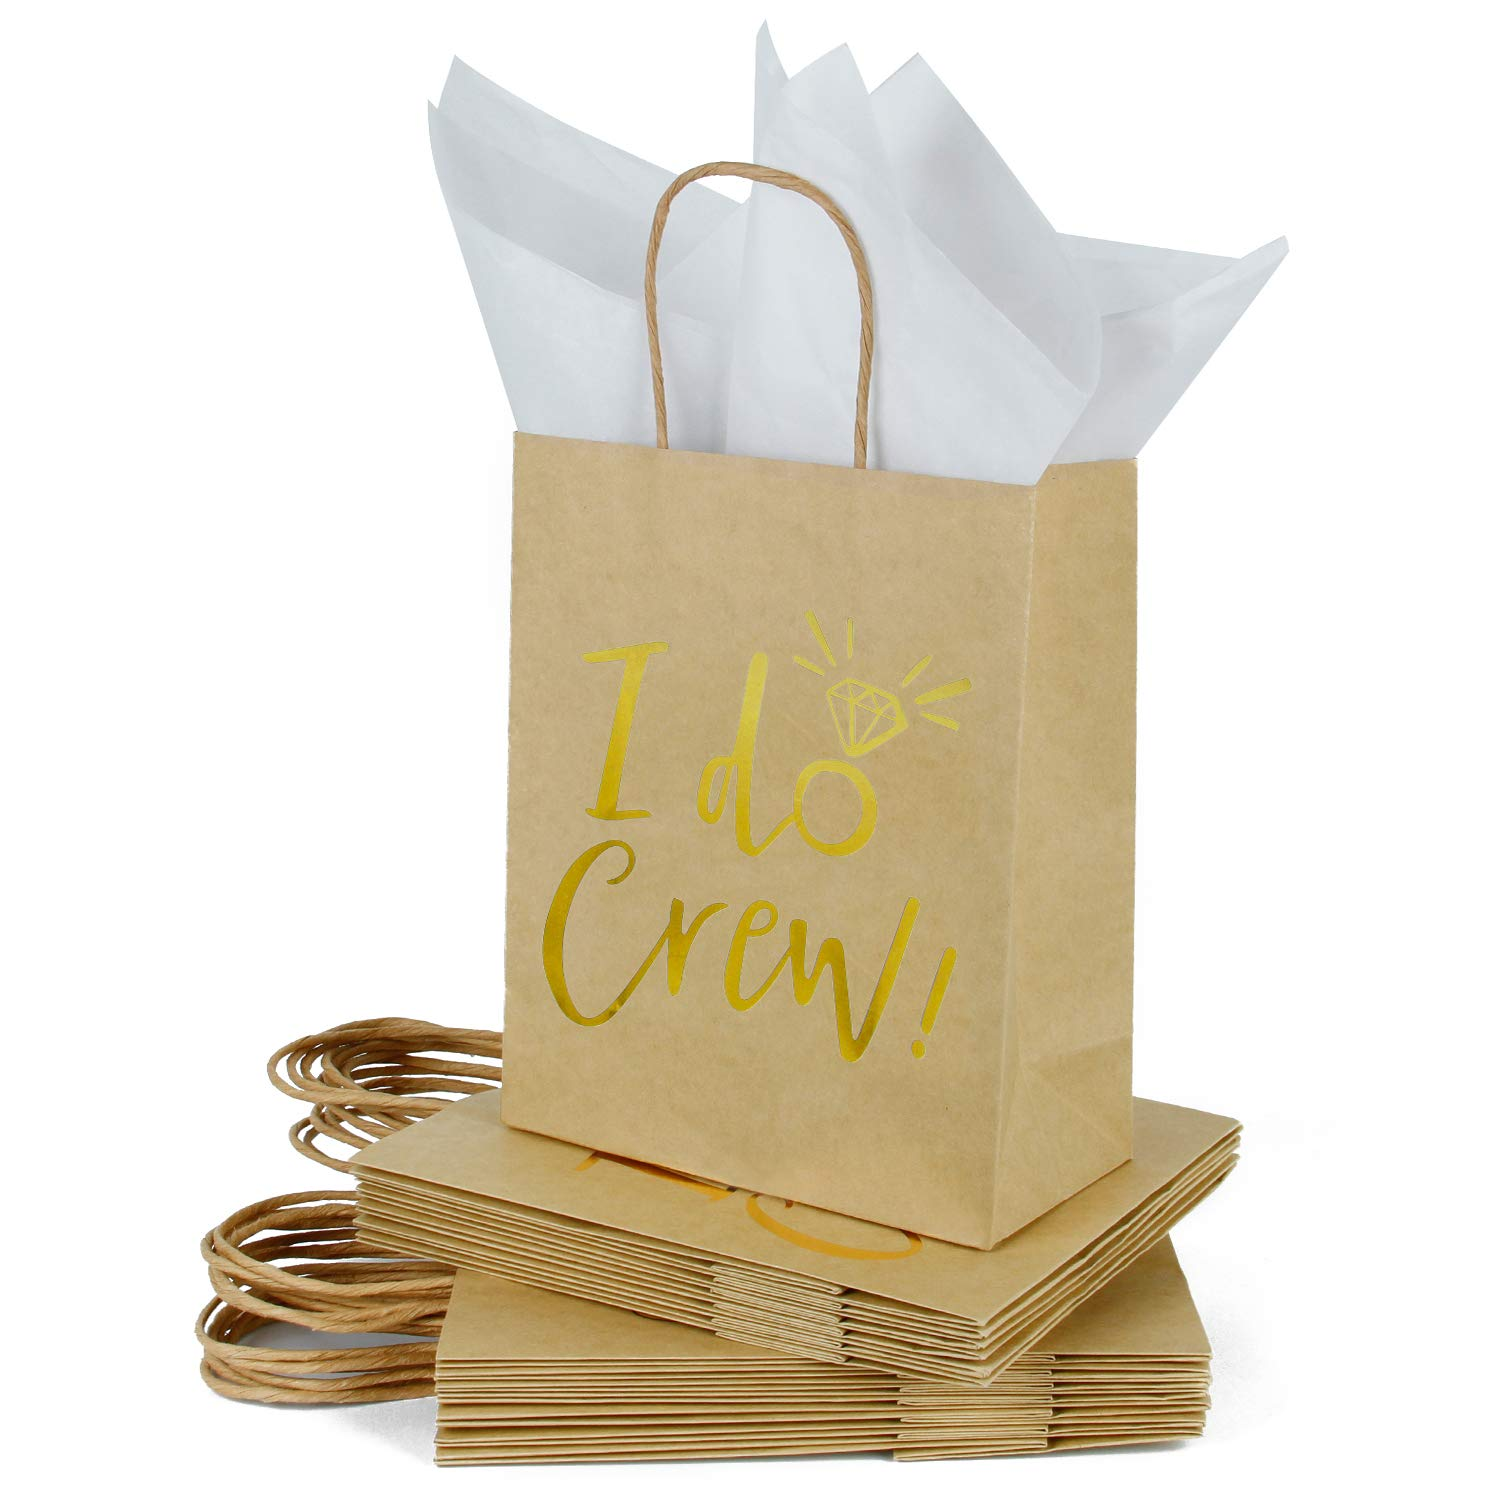 Loveinside Medium Kraft Gift Bags-I Do Crew Gold Foil Brown Paper Gift Bag with Tissue Paper - Wedding,Party Favor,Bridesmaids Gift-12Pack -8'' X 4'' X 10''